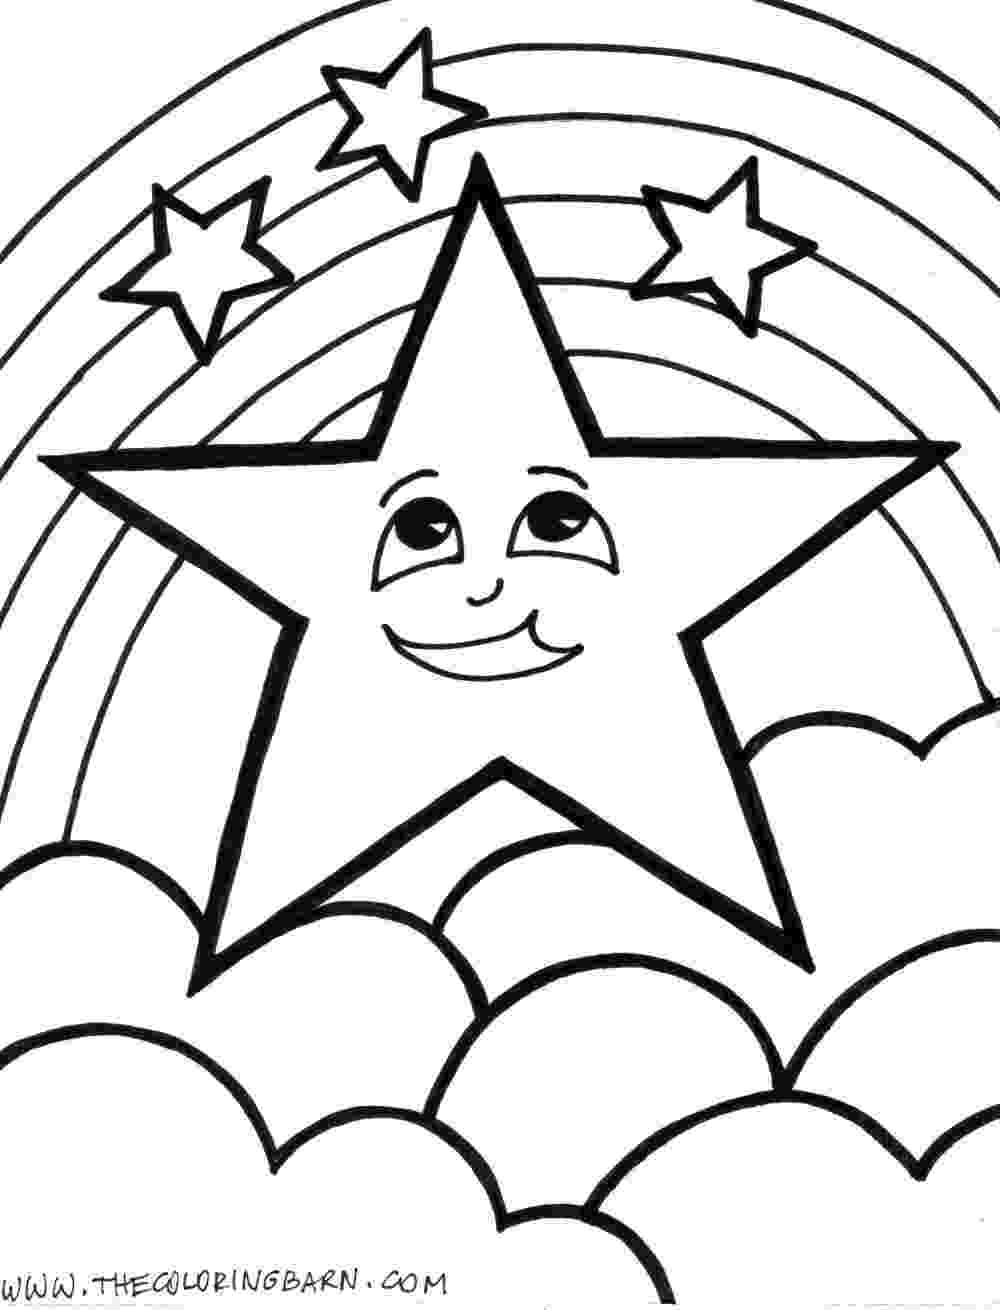 star coloring pages for preschoolers star coloring pages 360coloringpages preschoolers for pages star coloring